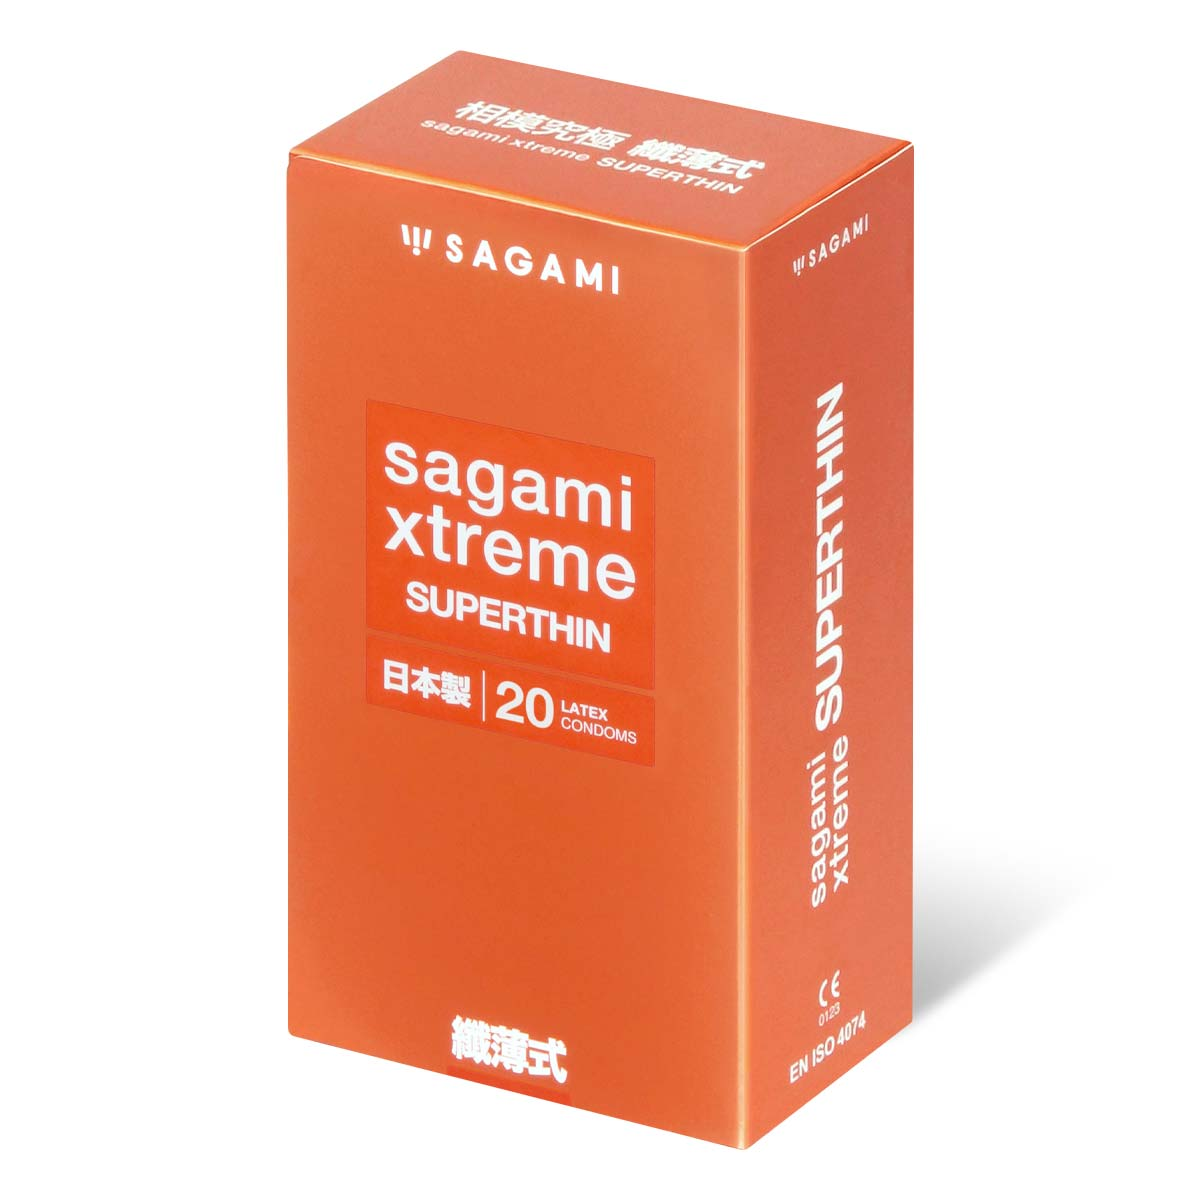 Sagami Xtreme Superthin (2nd generation) 20's Pack Latex Condom